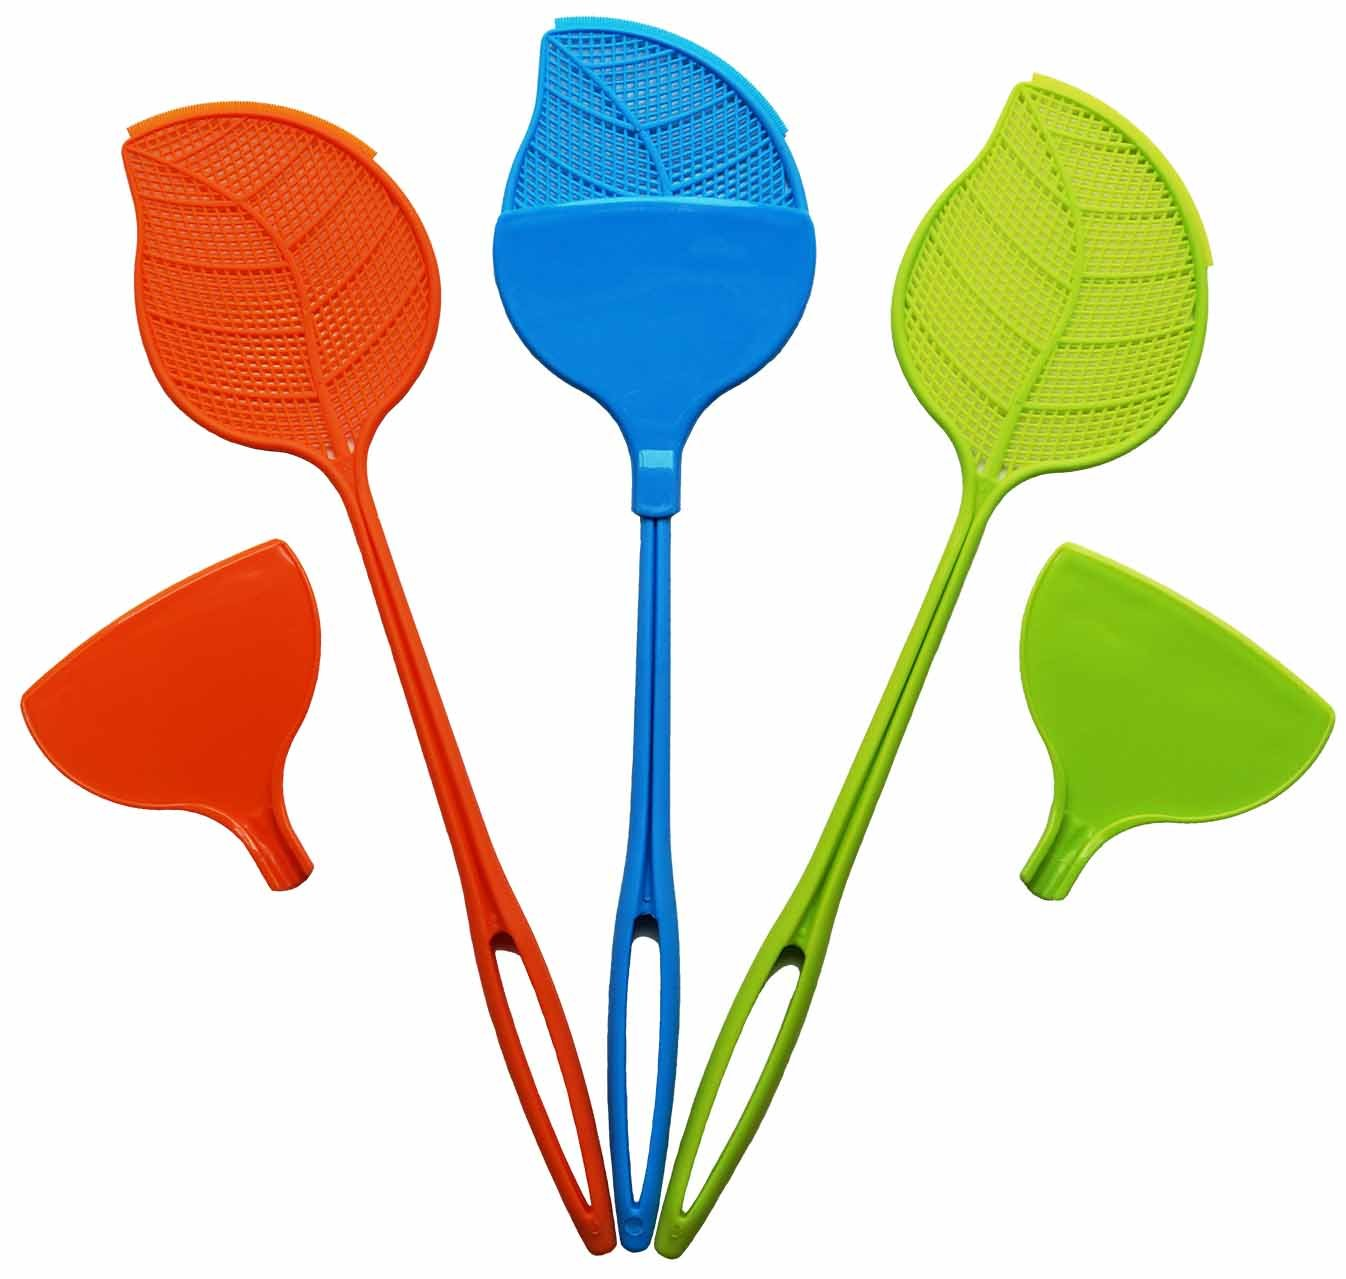 HomeWorthy Swat & Sweep Fly Swatter 3 Pack with Heavy Duty Plastic Handle and Detachable Dust Pans for Sanitary Bug Cleanup